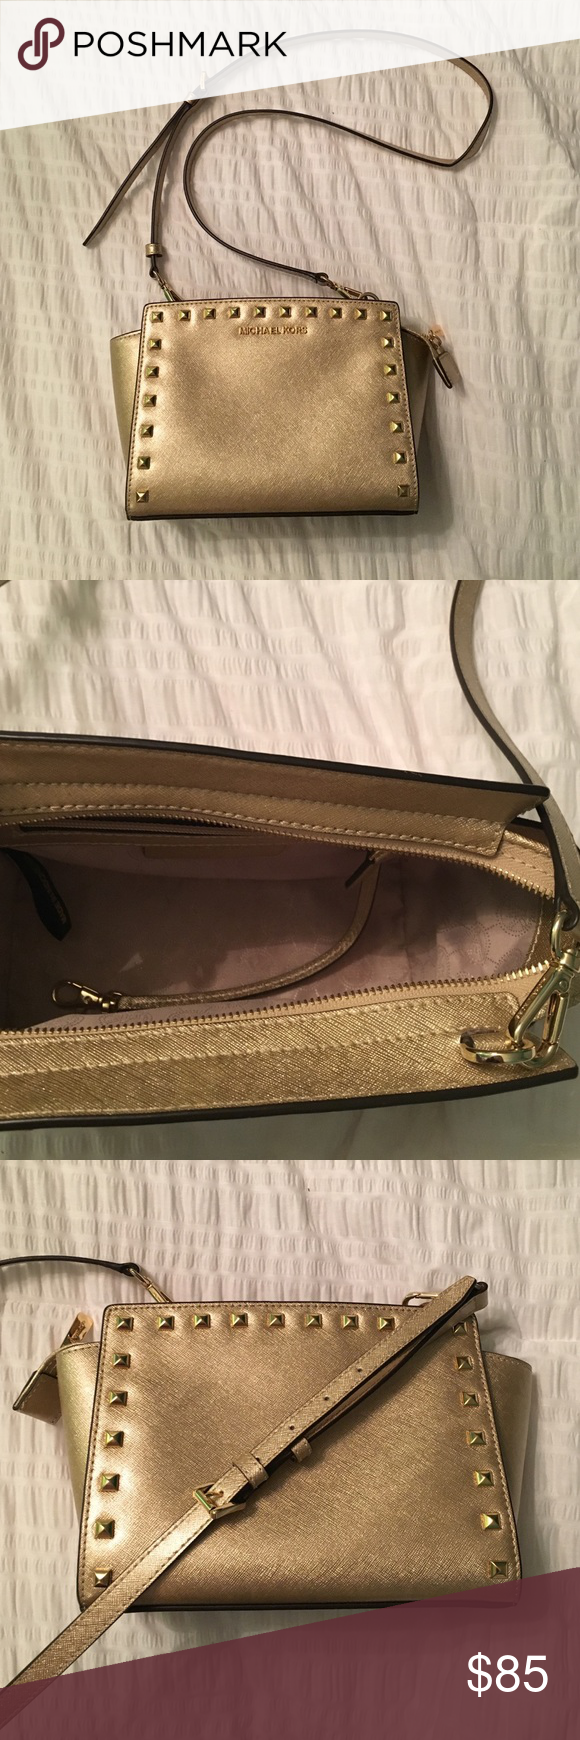 23d66b2e9f50 Michael Kors Selma Mini gold studded Michael Kors Selma mini with studs.  Gold saffiano leather. Never been worn and in perfect condition!